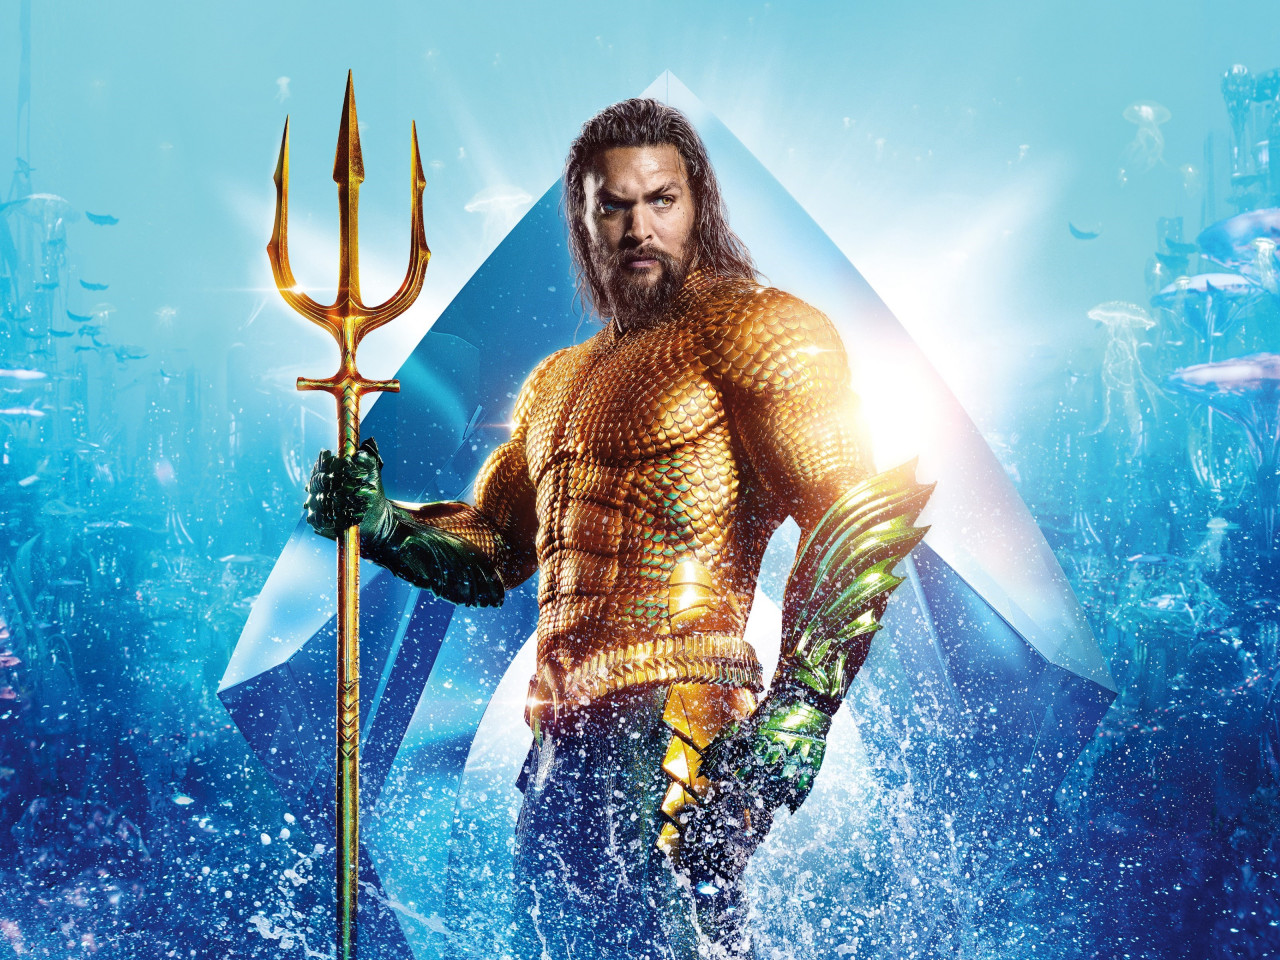 Aquaman Hero wallpaper 1280x960